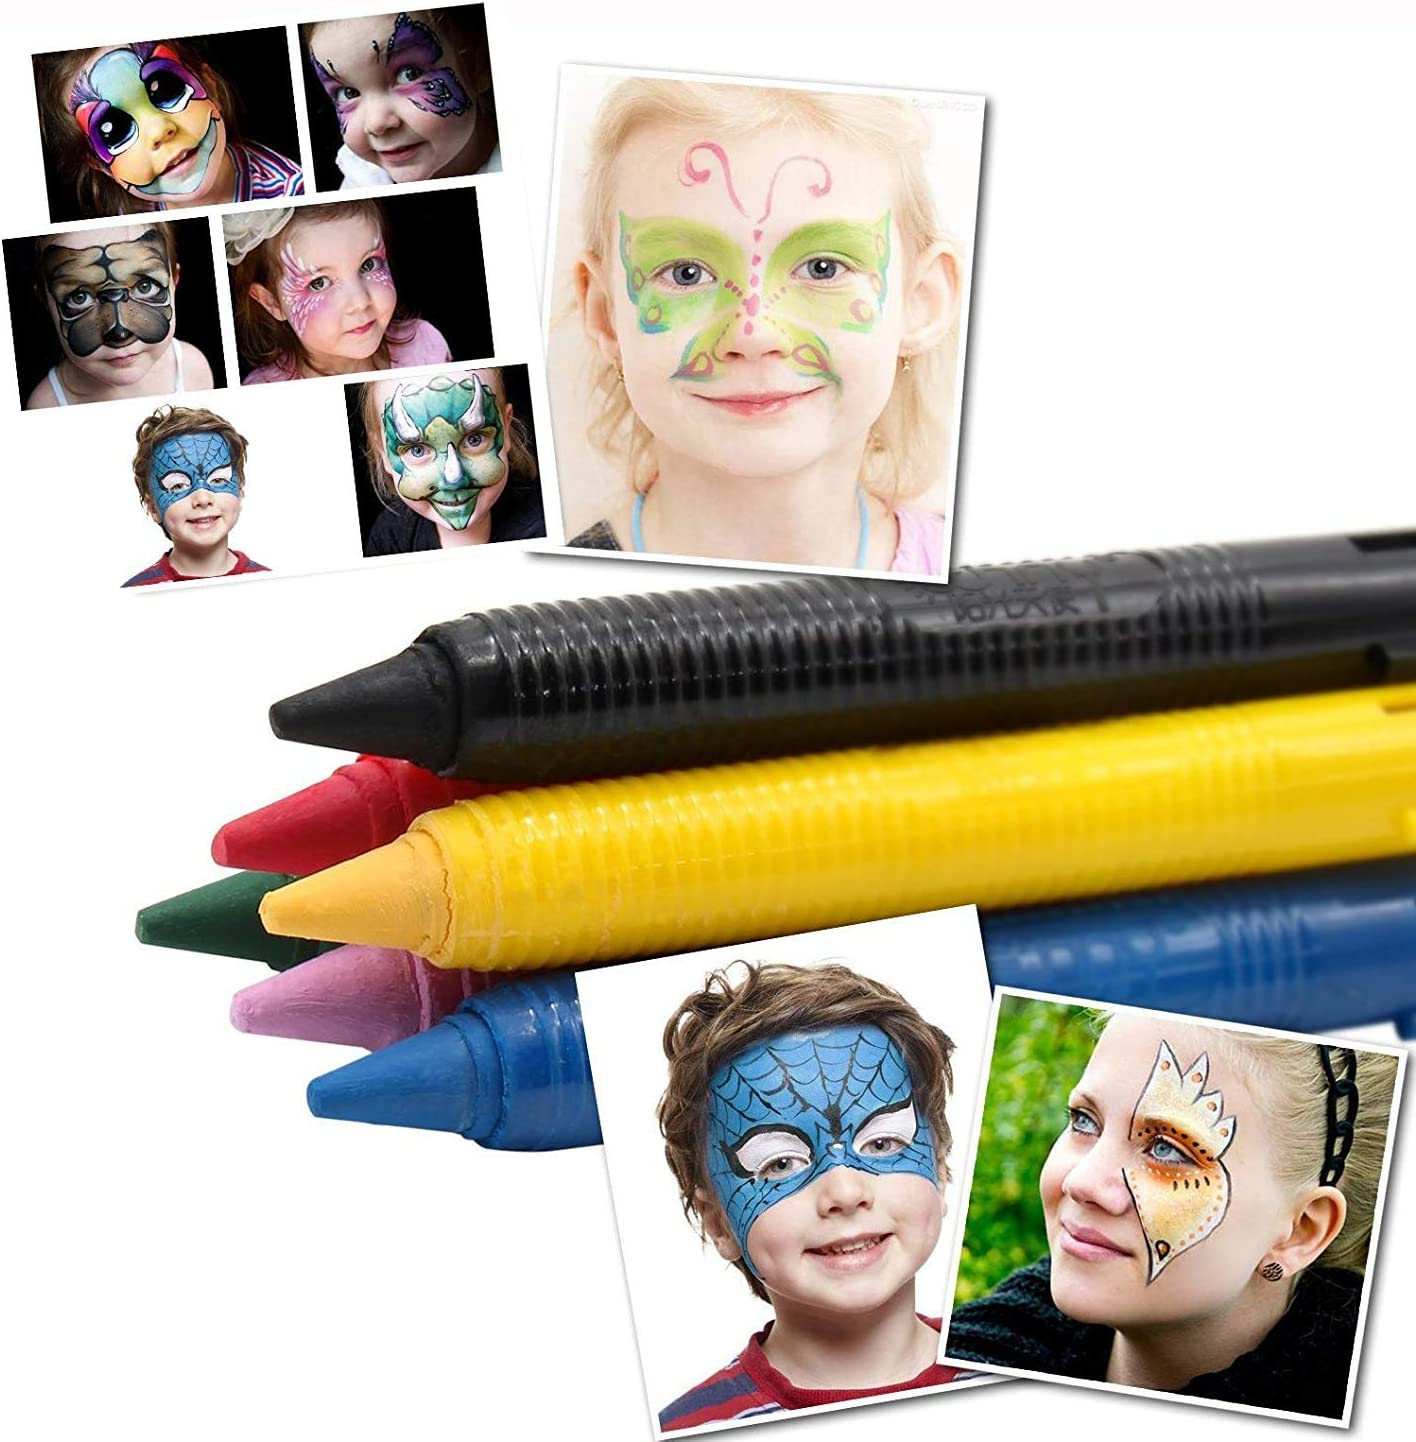 Xrten Children Drawing Set Party Cosplay 16 Colors Crayons Paint Kits for Kids Body Painting Halloween Makeup Face and Body Paint Crayons